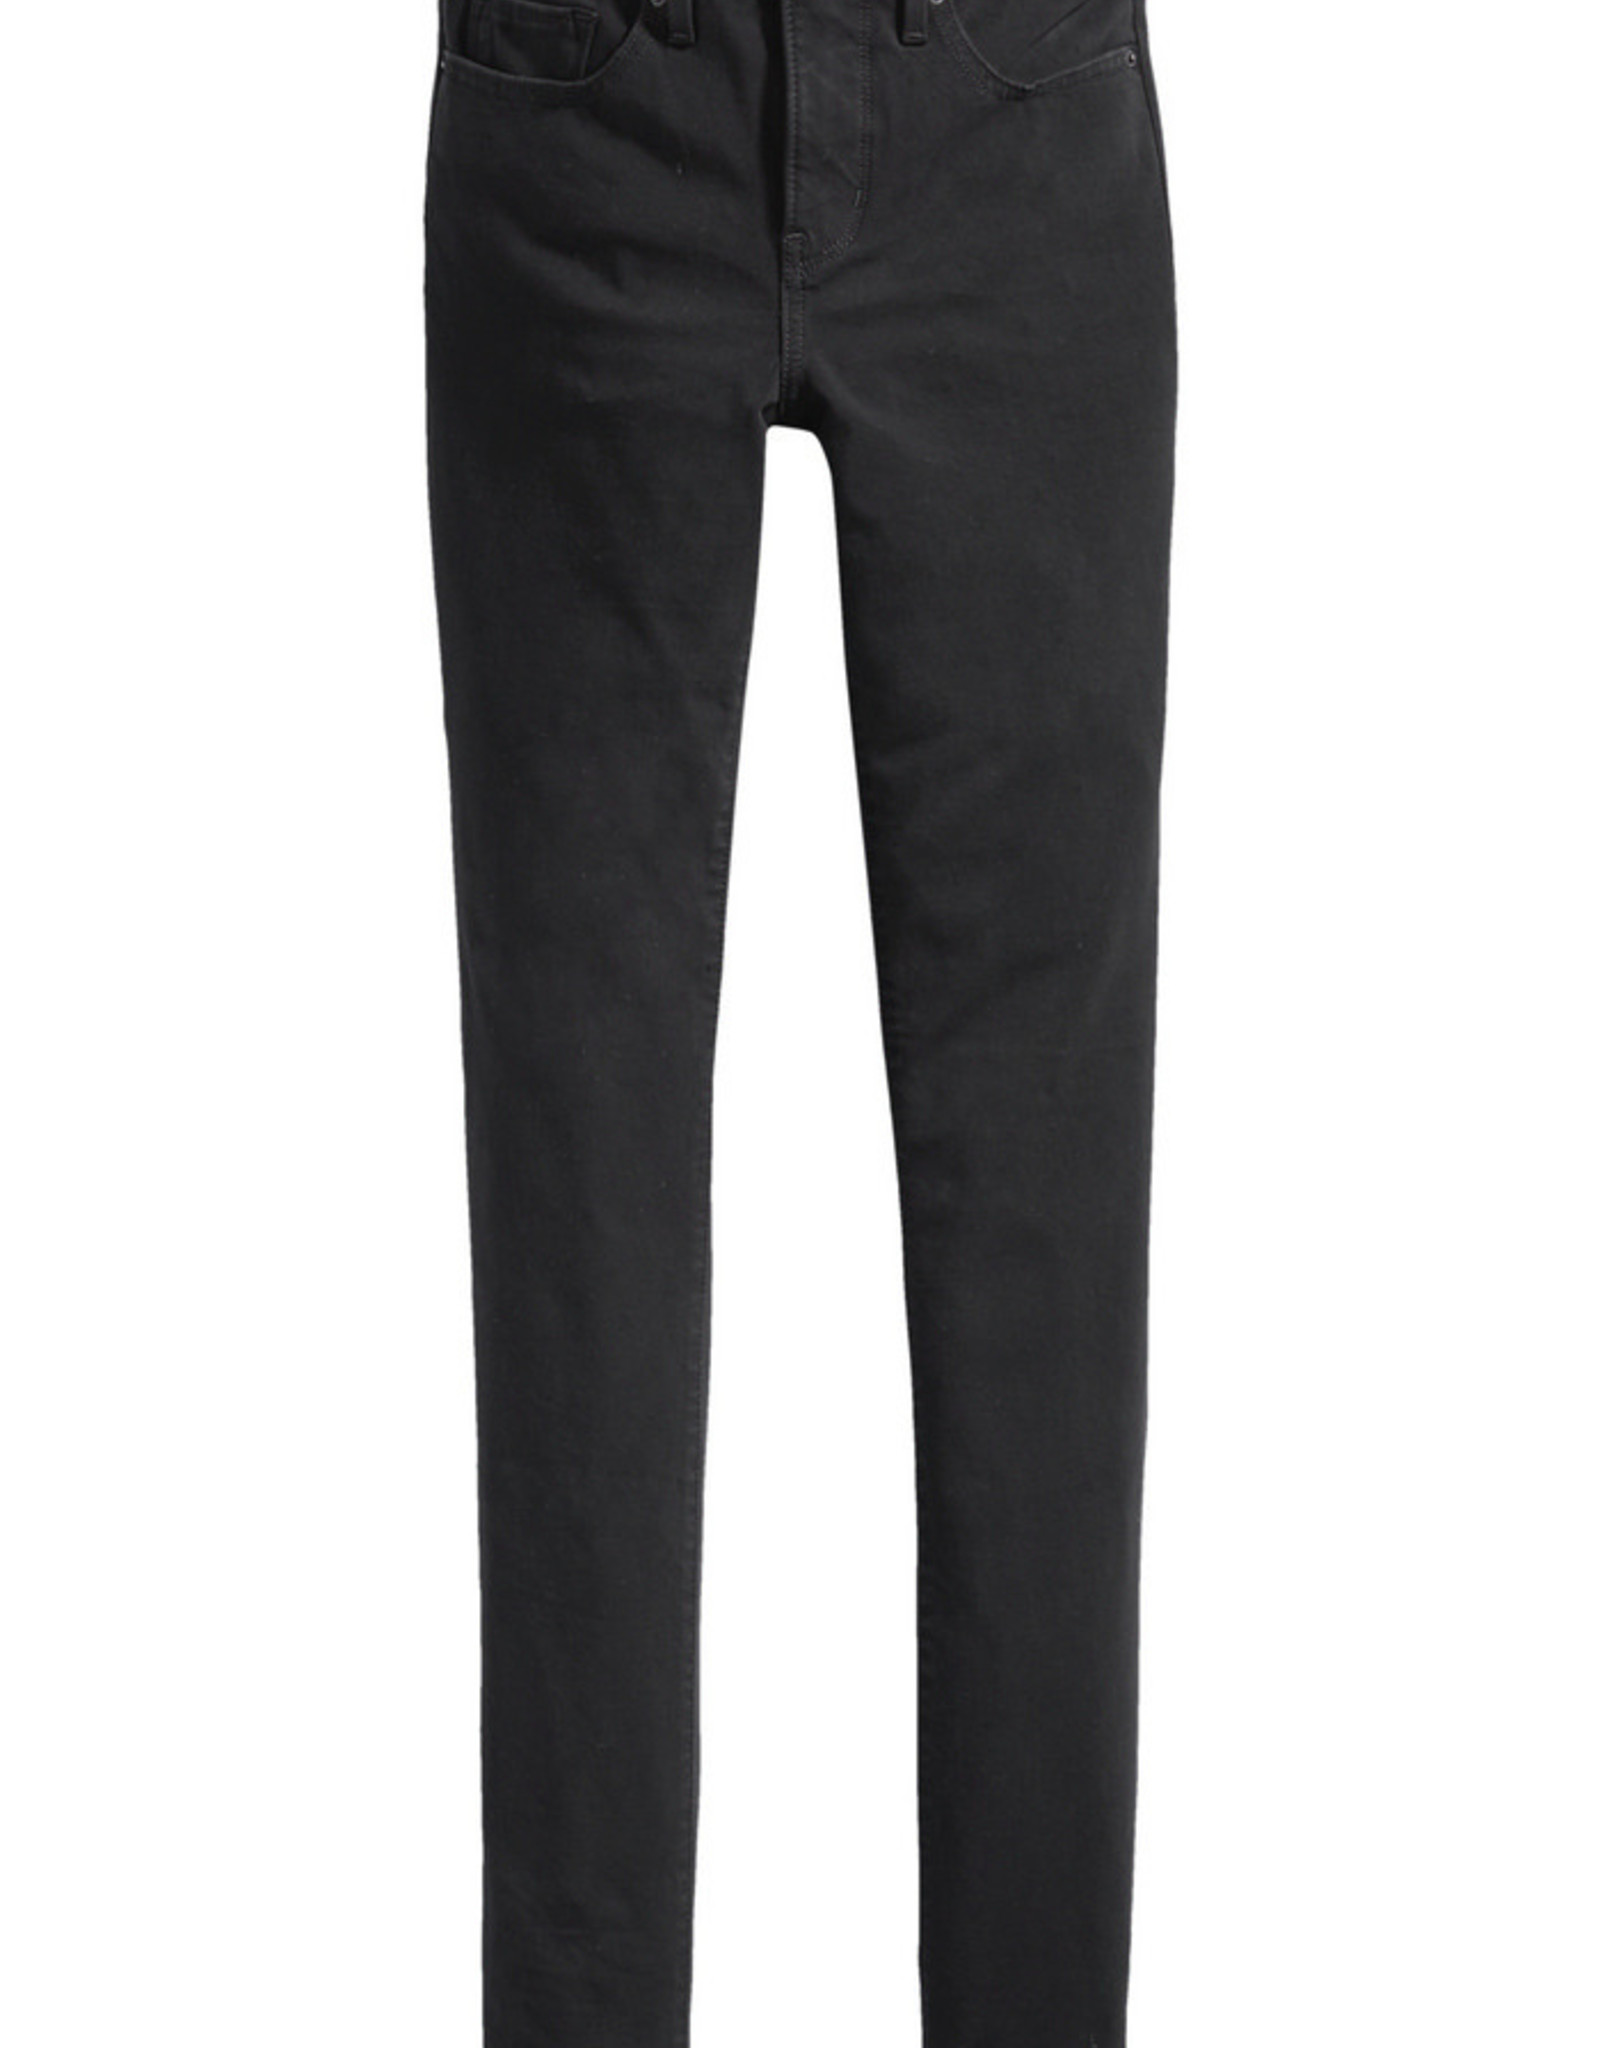 Levi's 311 Shaping Skinny New Black